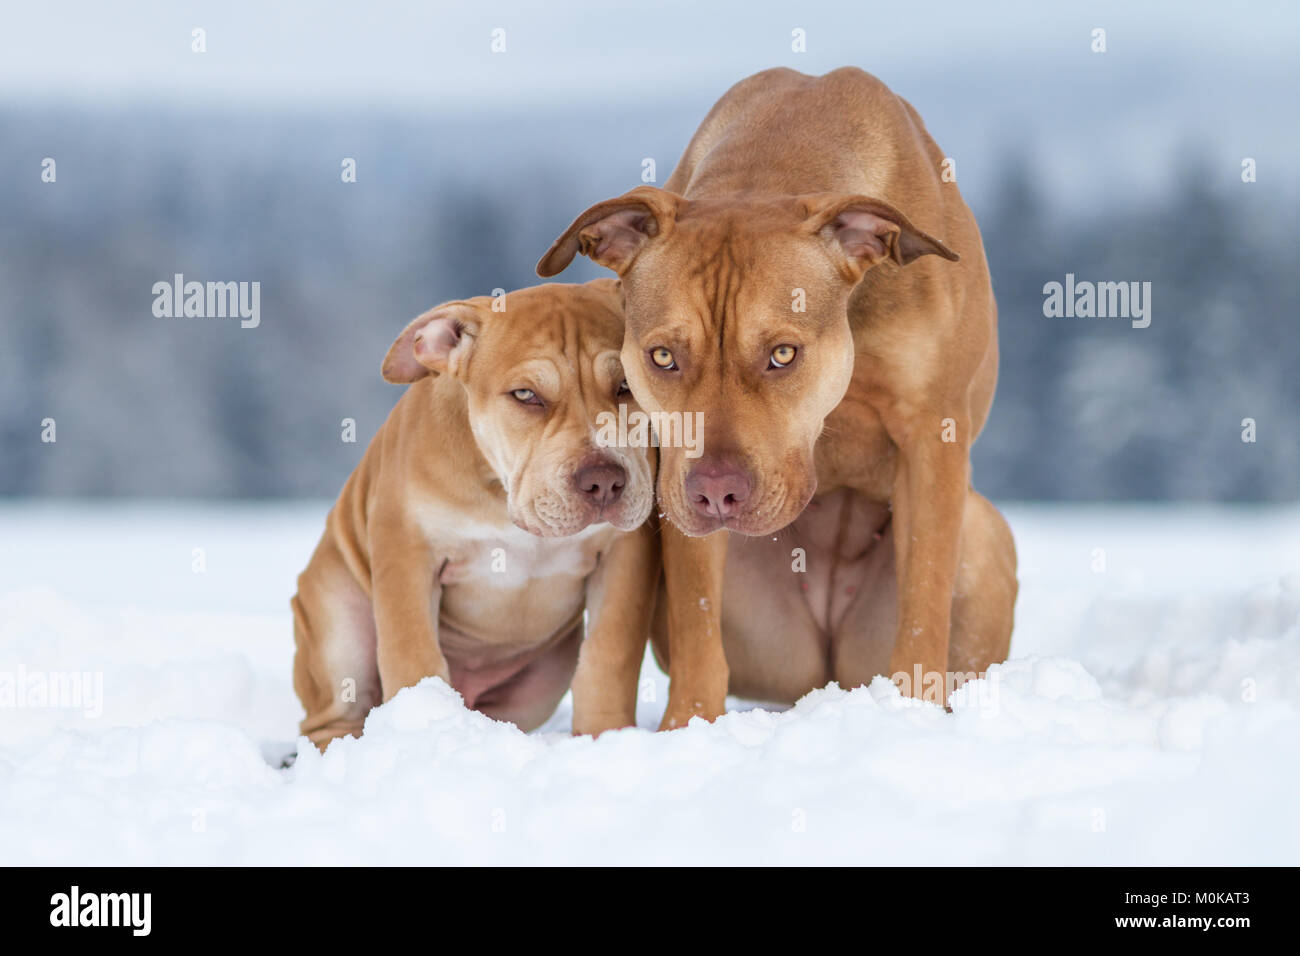 Adult dog and puppy sitting together in the snow, group of dogs, winter - Stock Image